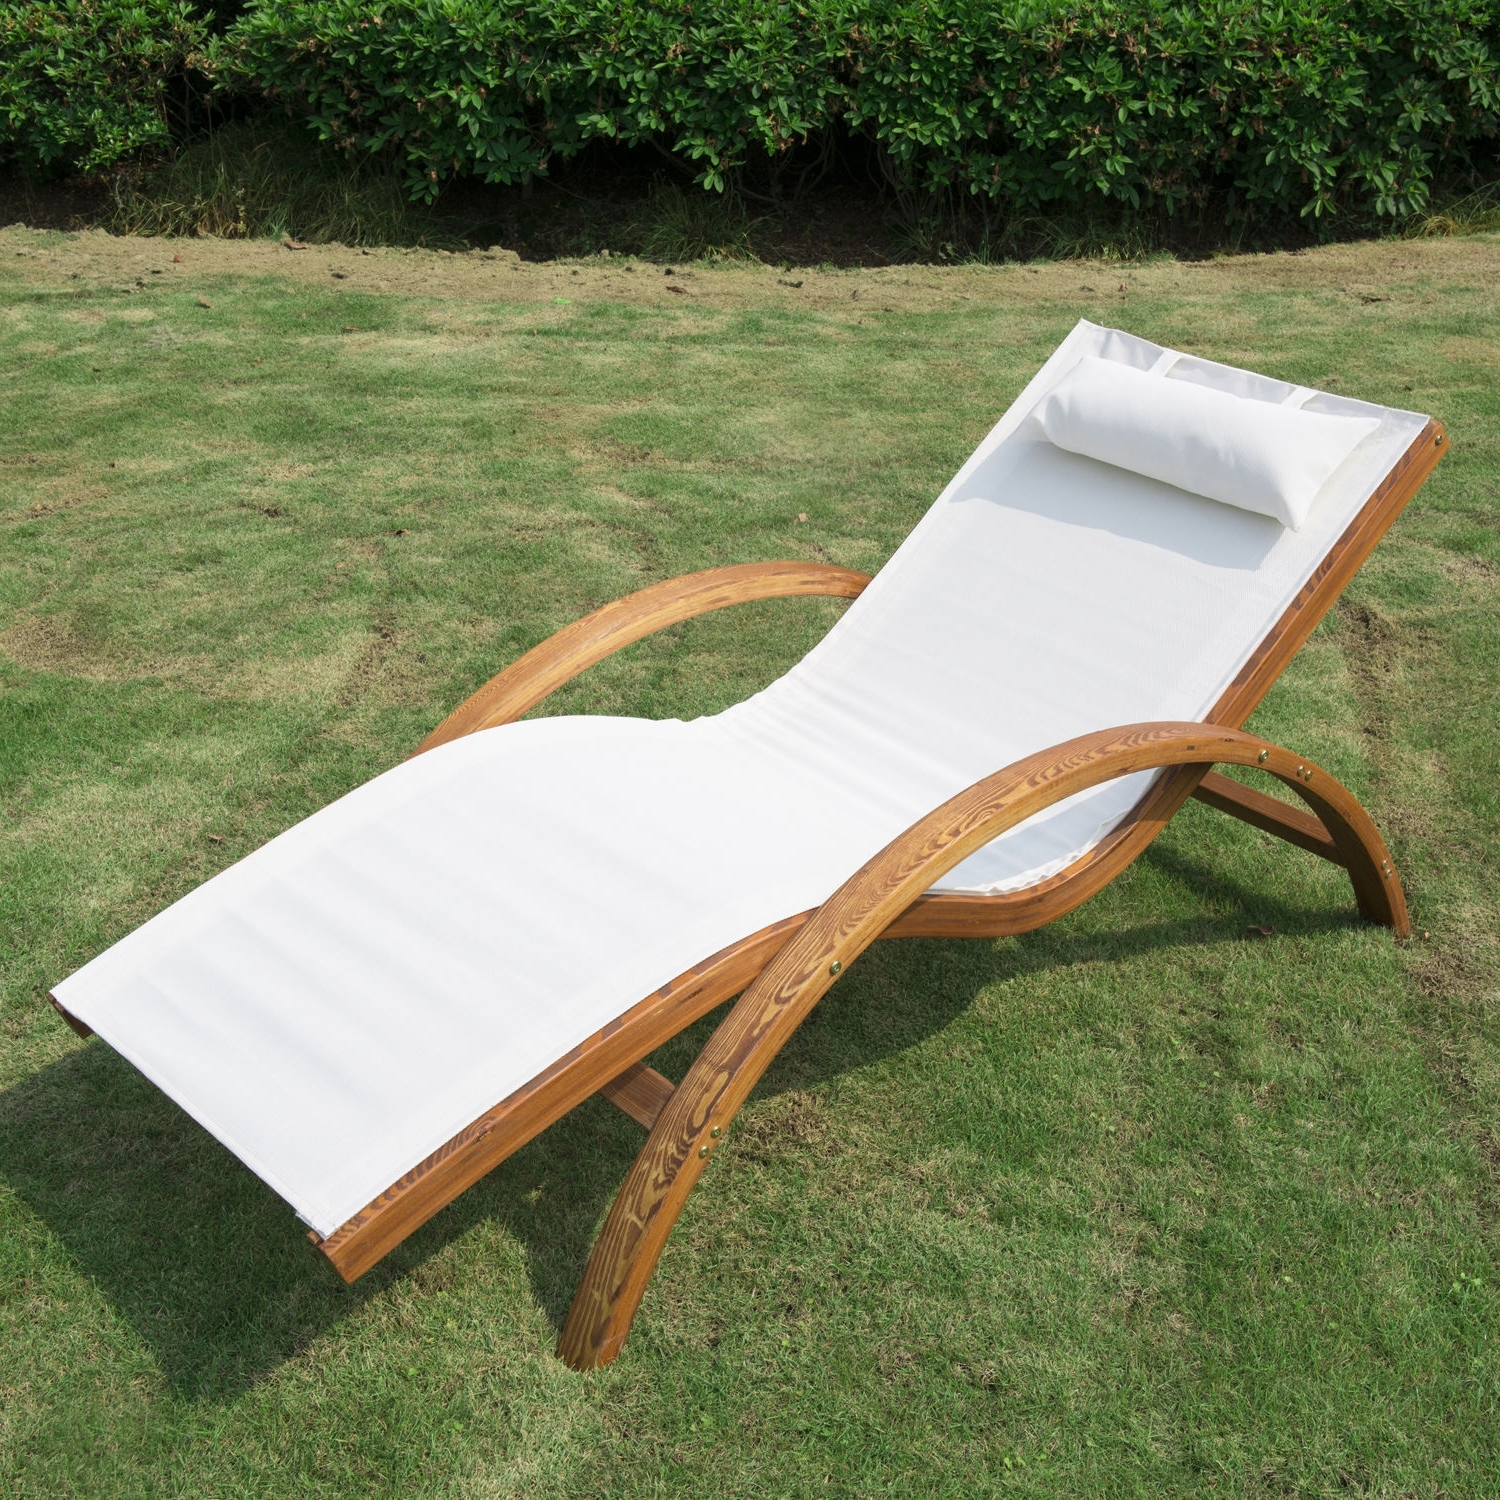 Most Popular Pool Chaise Lounges Within Wooden Patio Chaise Lounge Chair Outdoor Furniture Pool Garden (View 12 of 15)